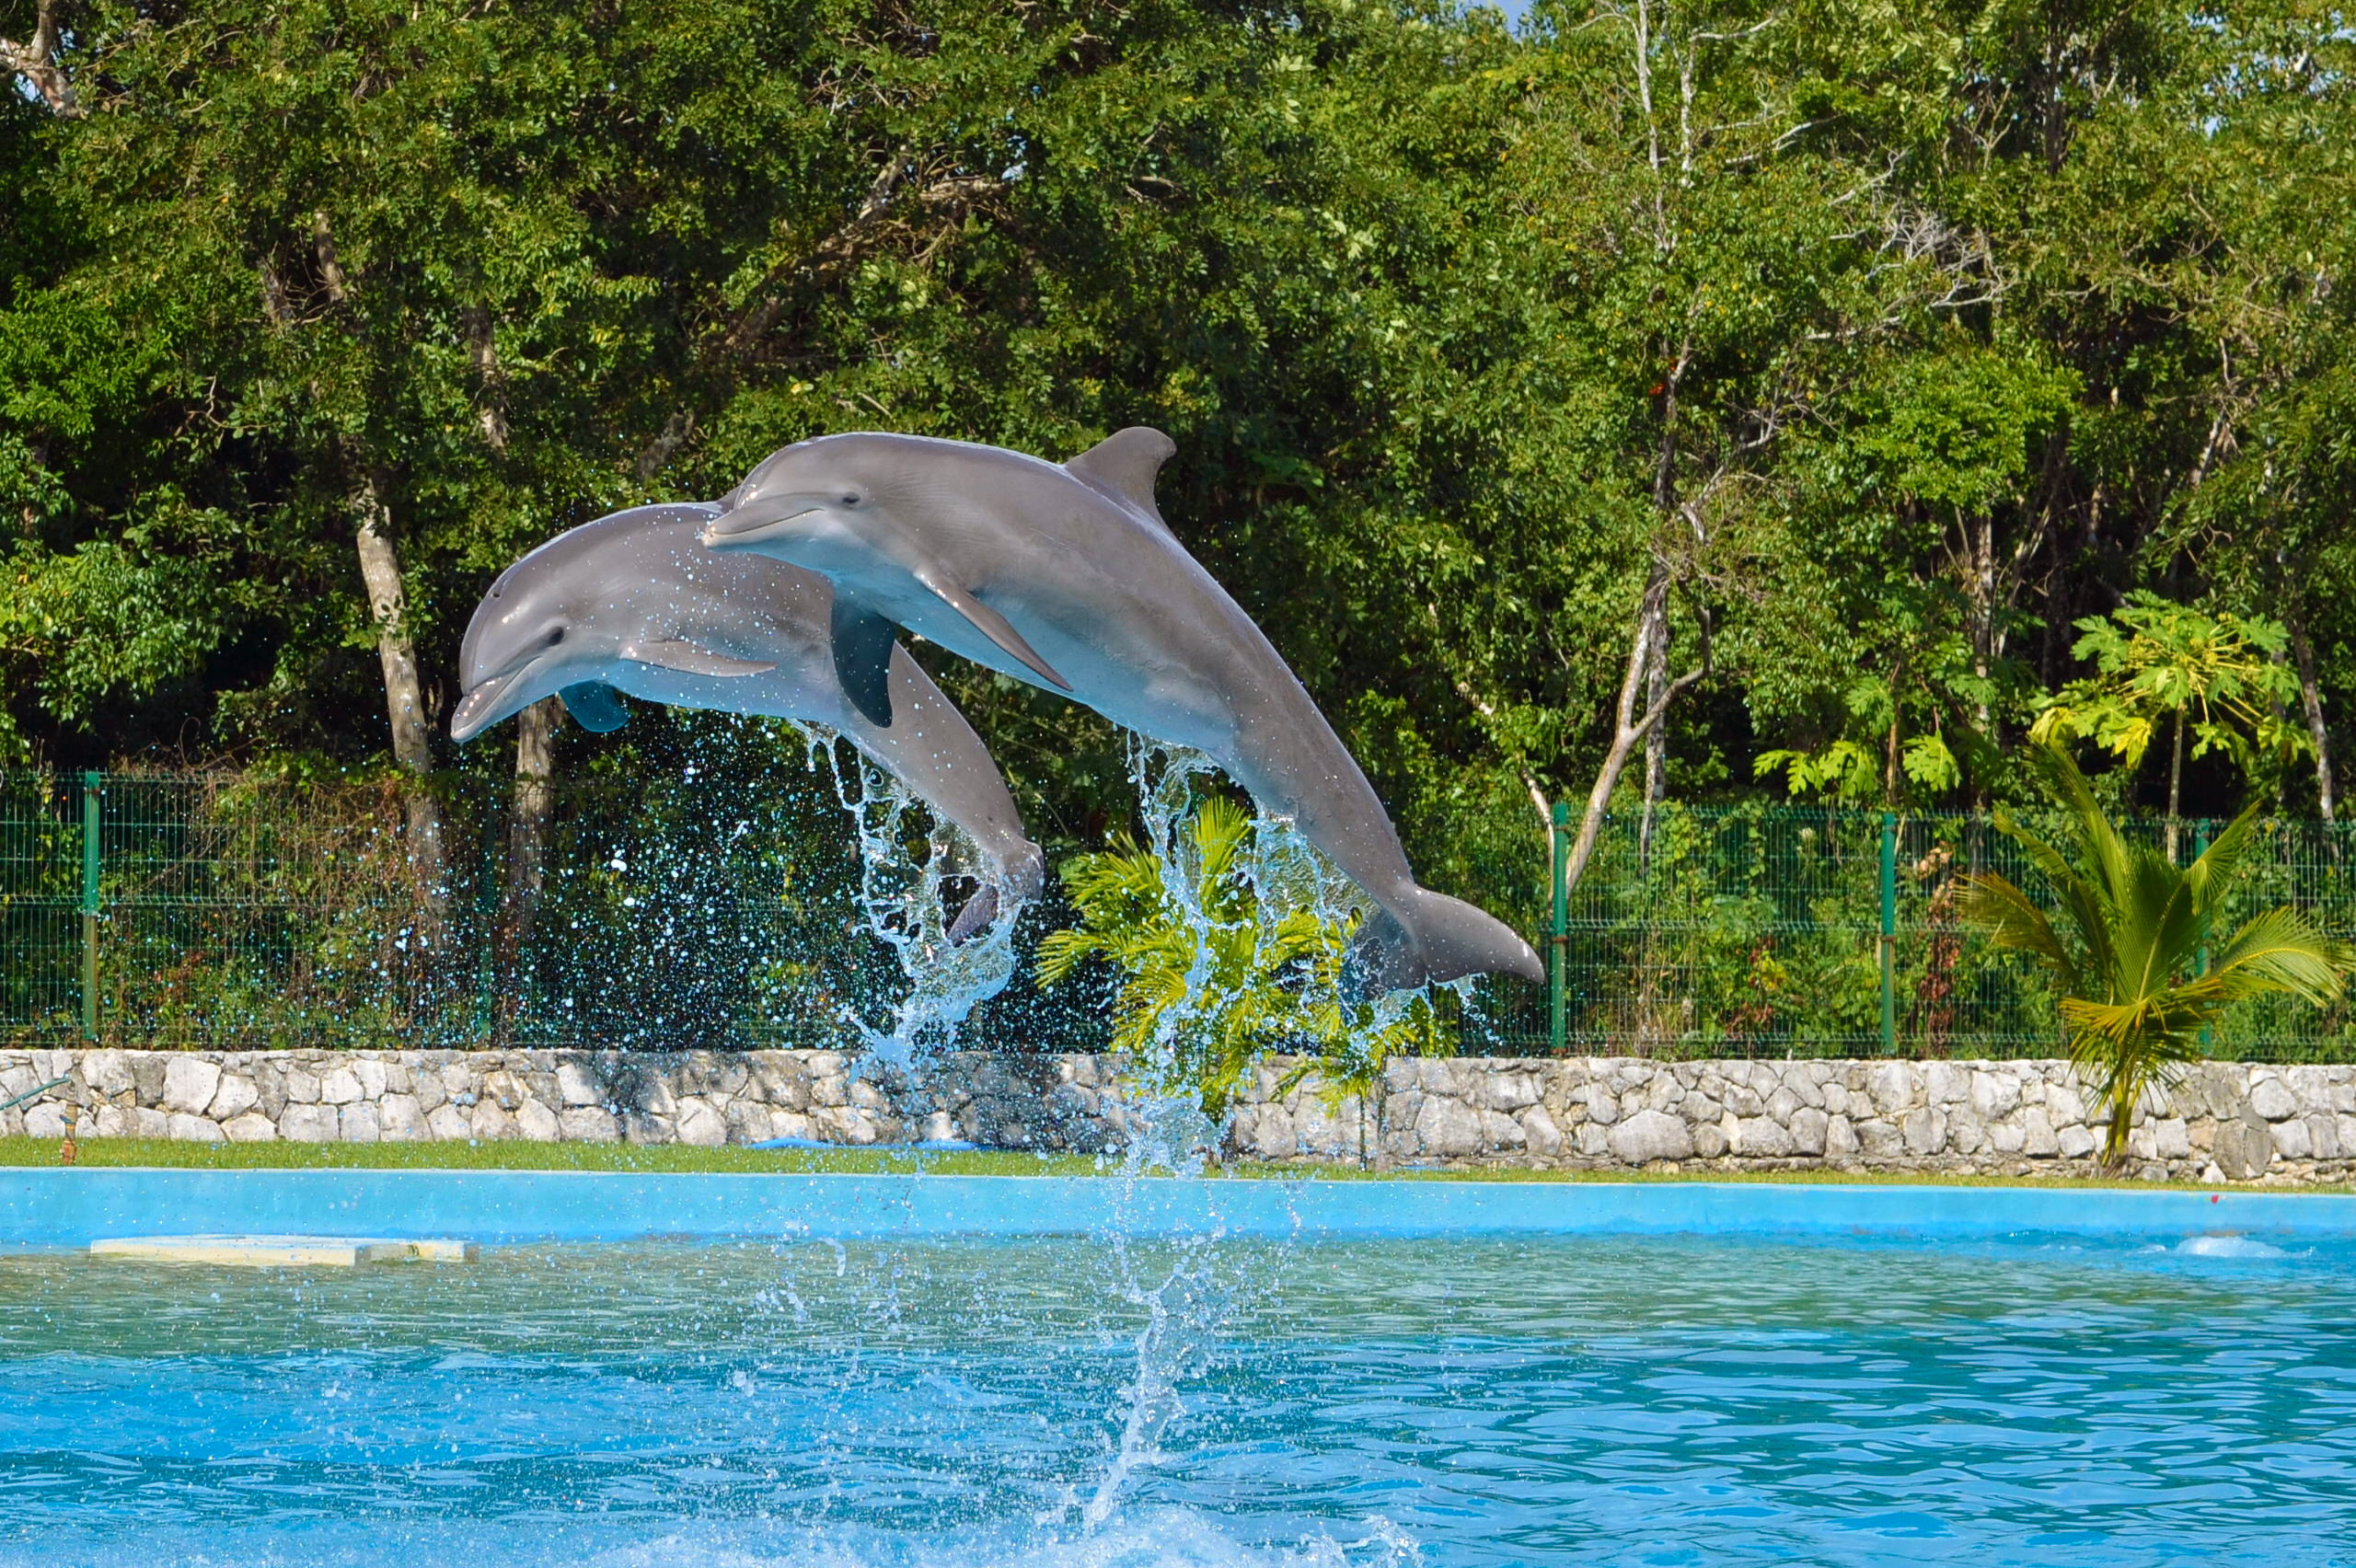 Friendly and fun, dolphins facts will amaze you